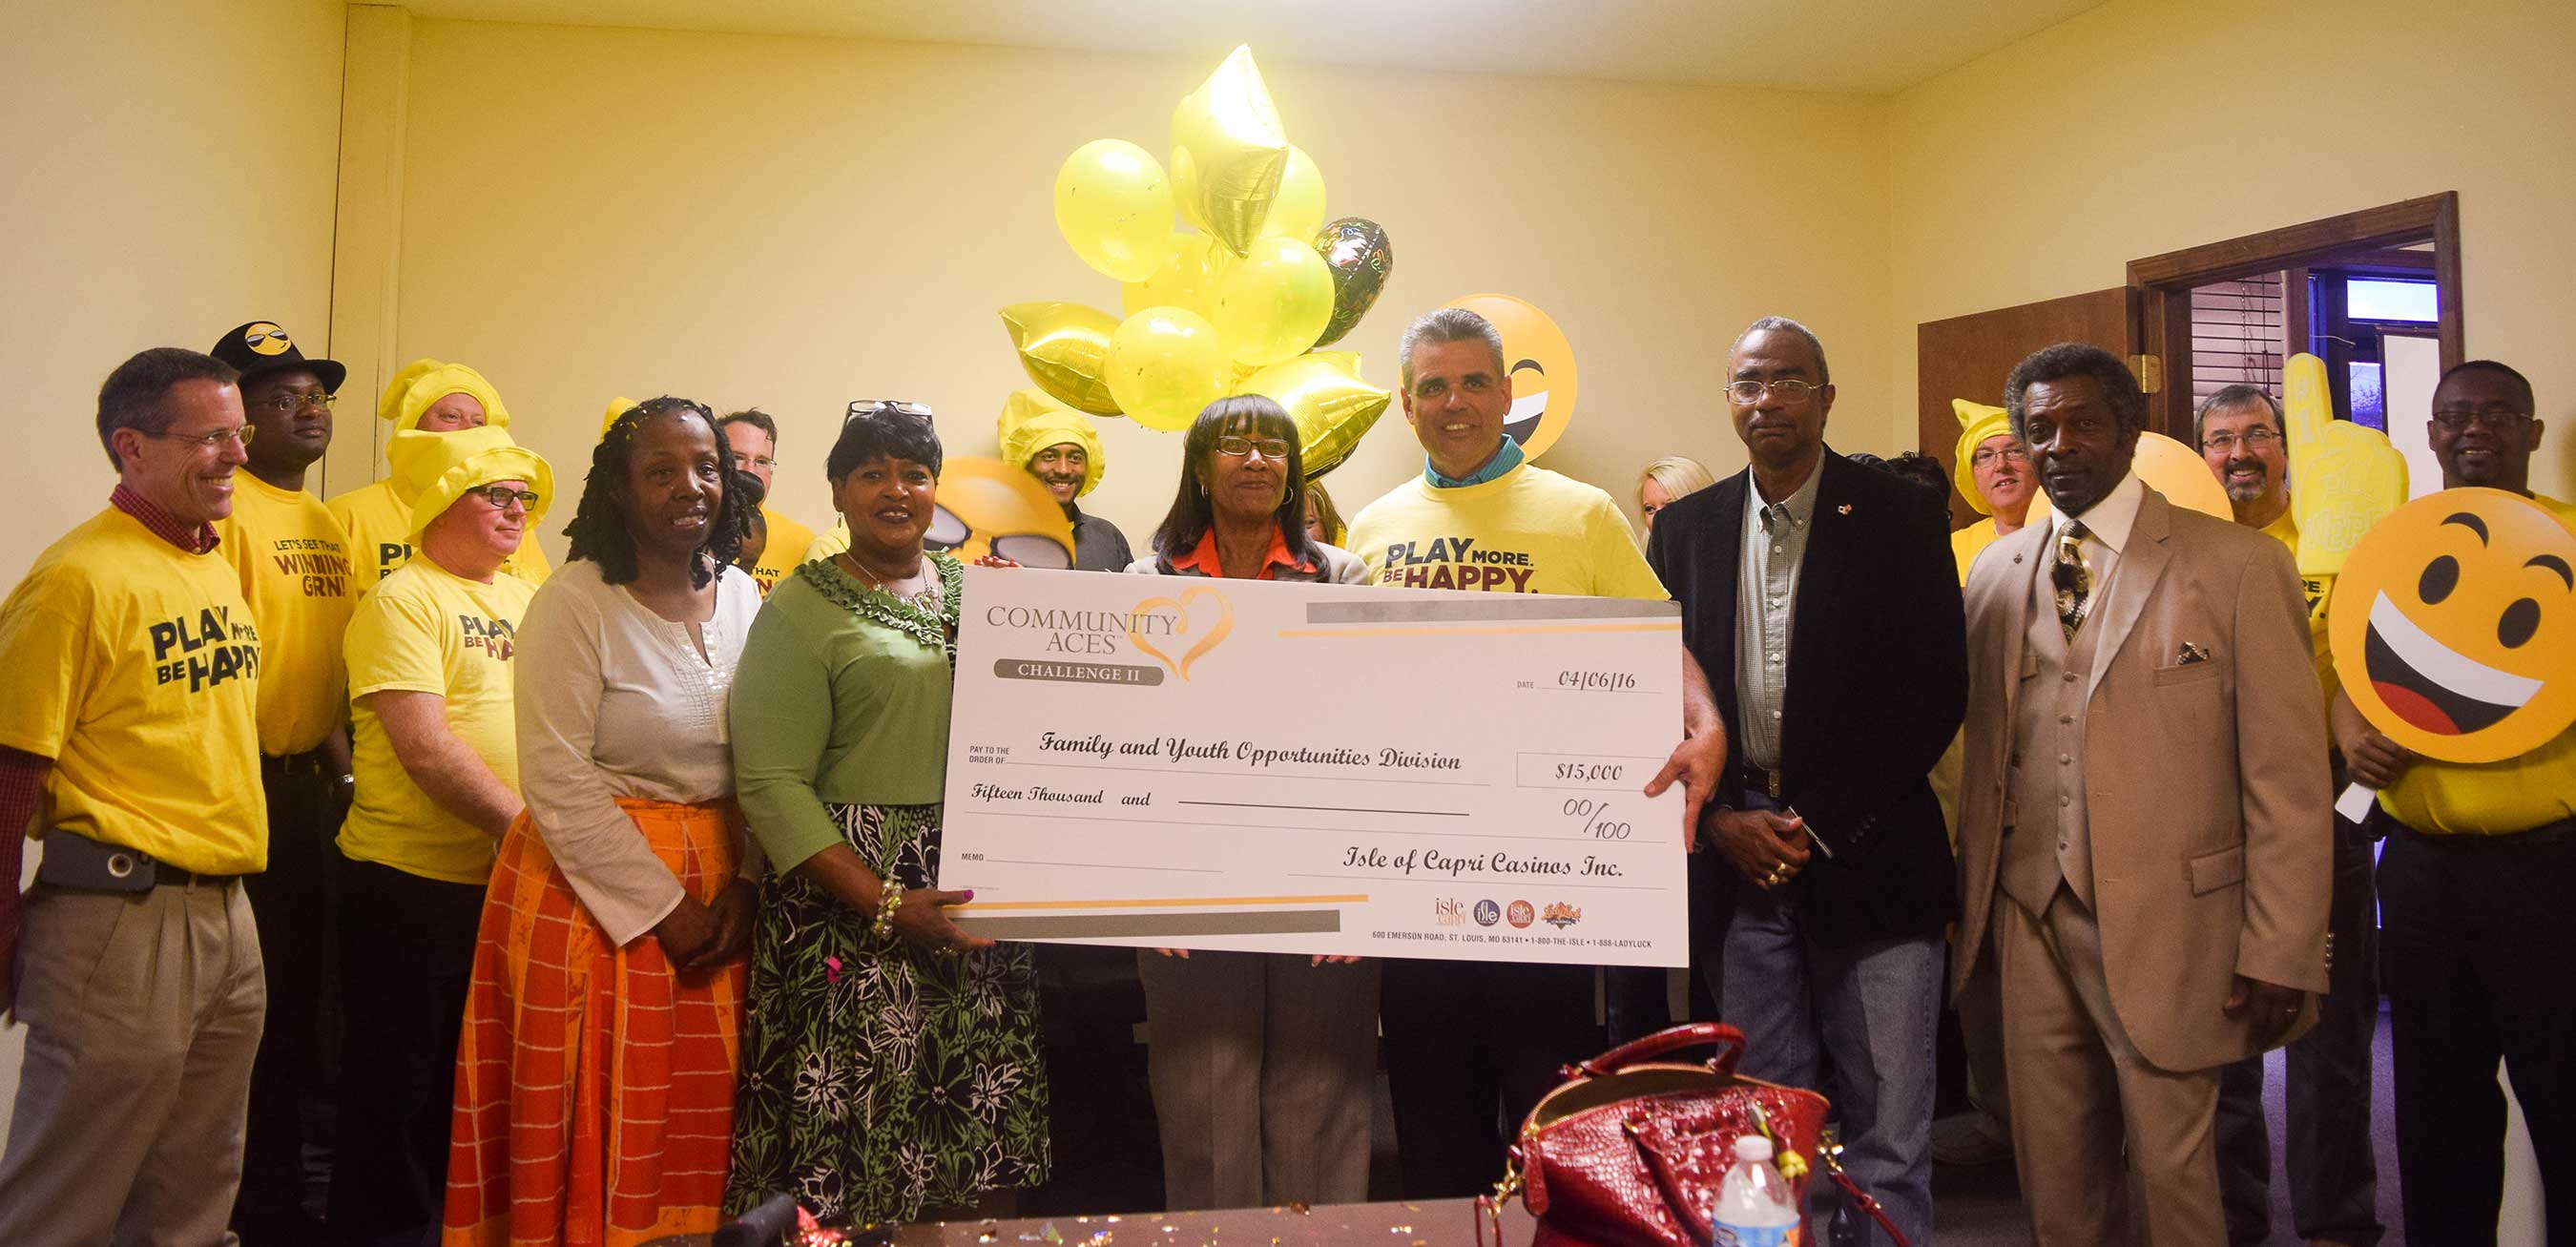 Family & Youth Opportunities Division, based in Clarksdale, Mississippi, was granted $15,000 to renovate an old school building into a community center.